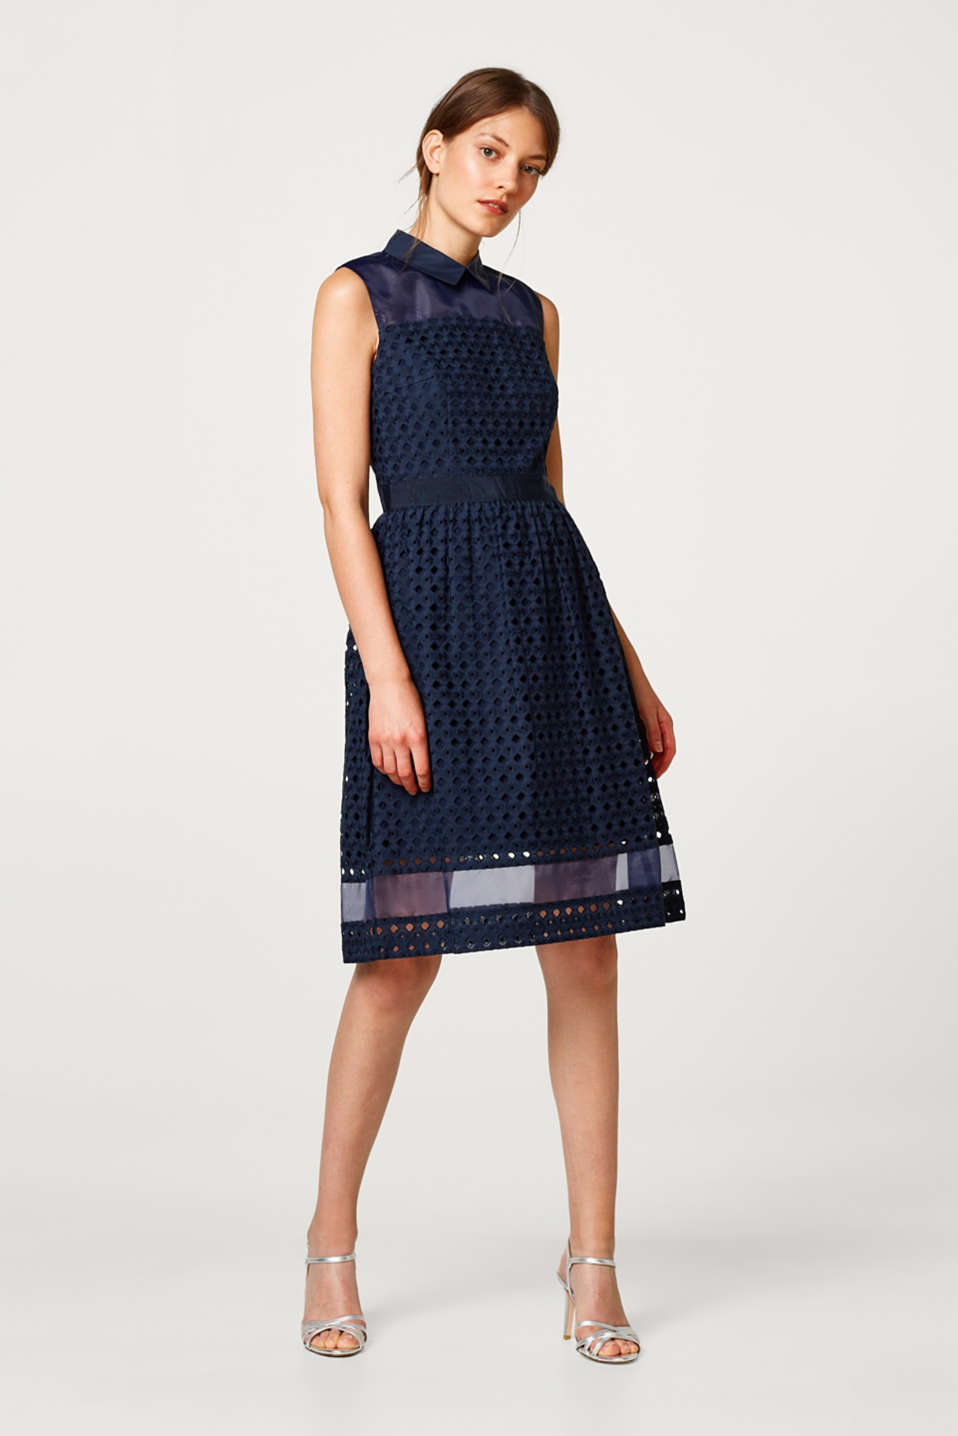 Esprit - Dress made of English lace with organza